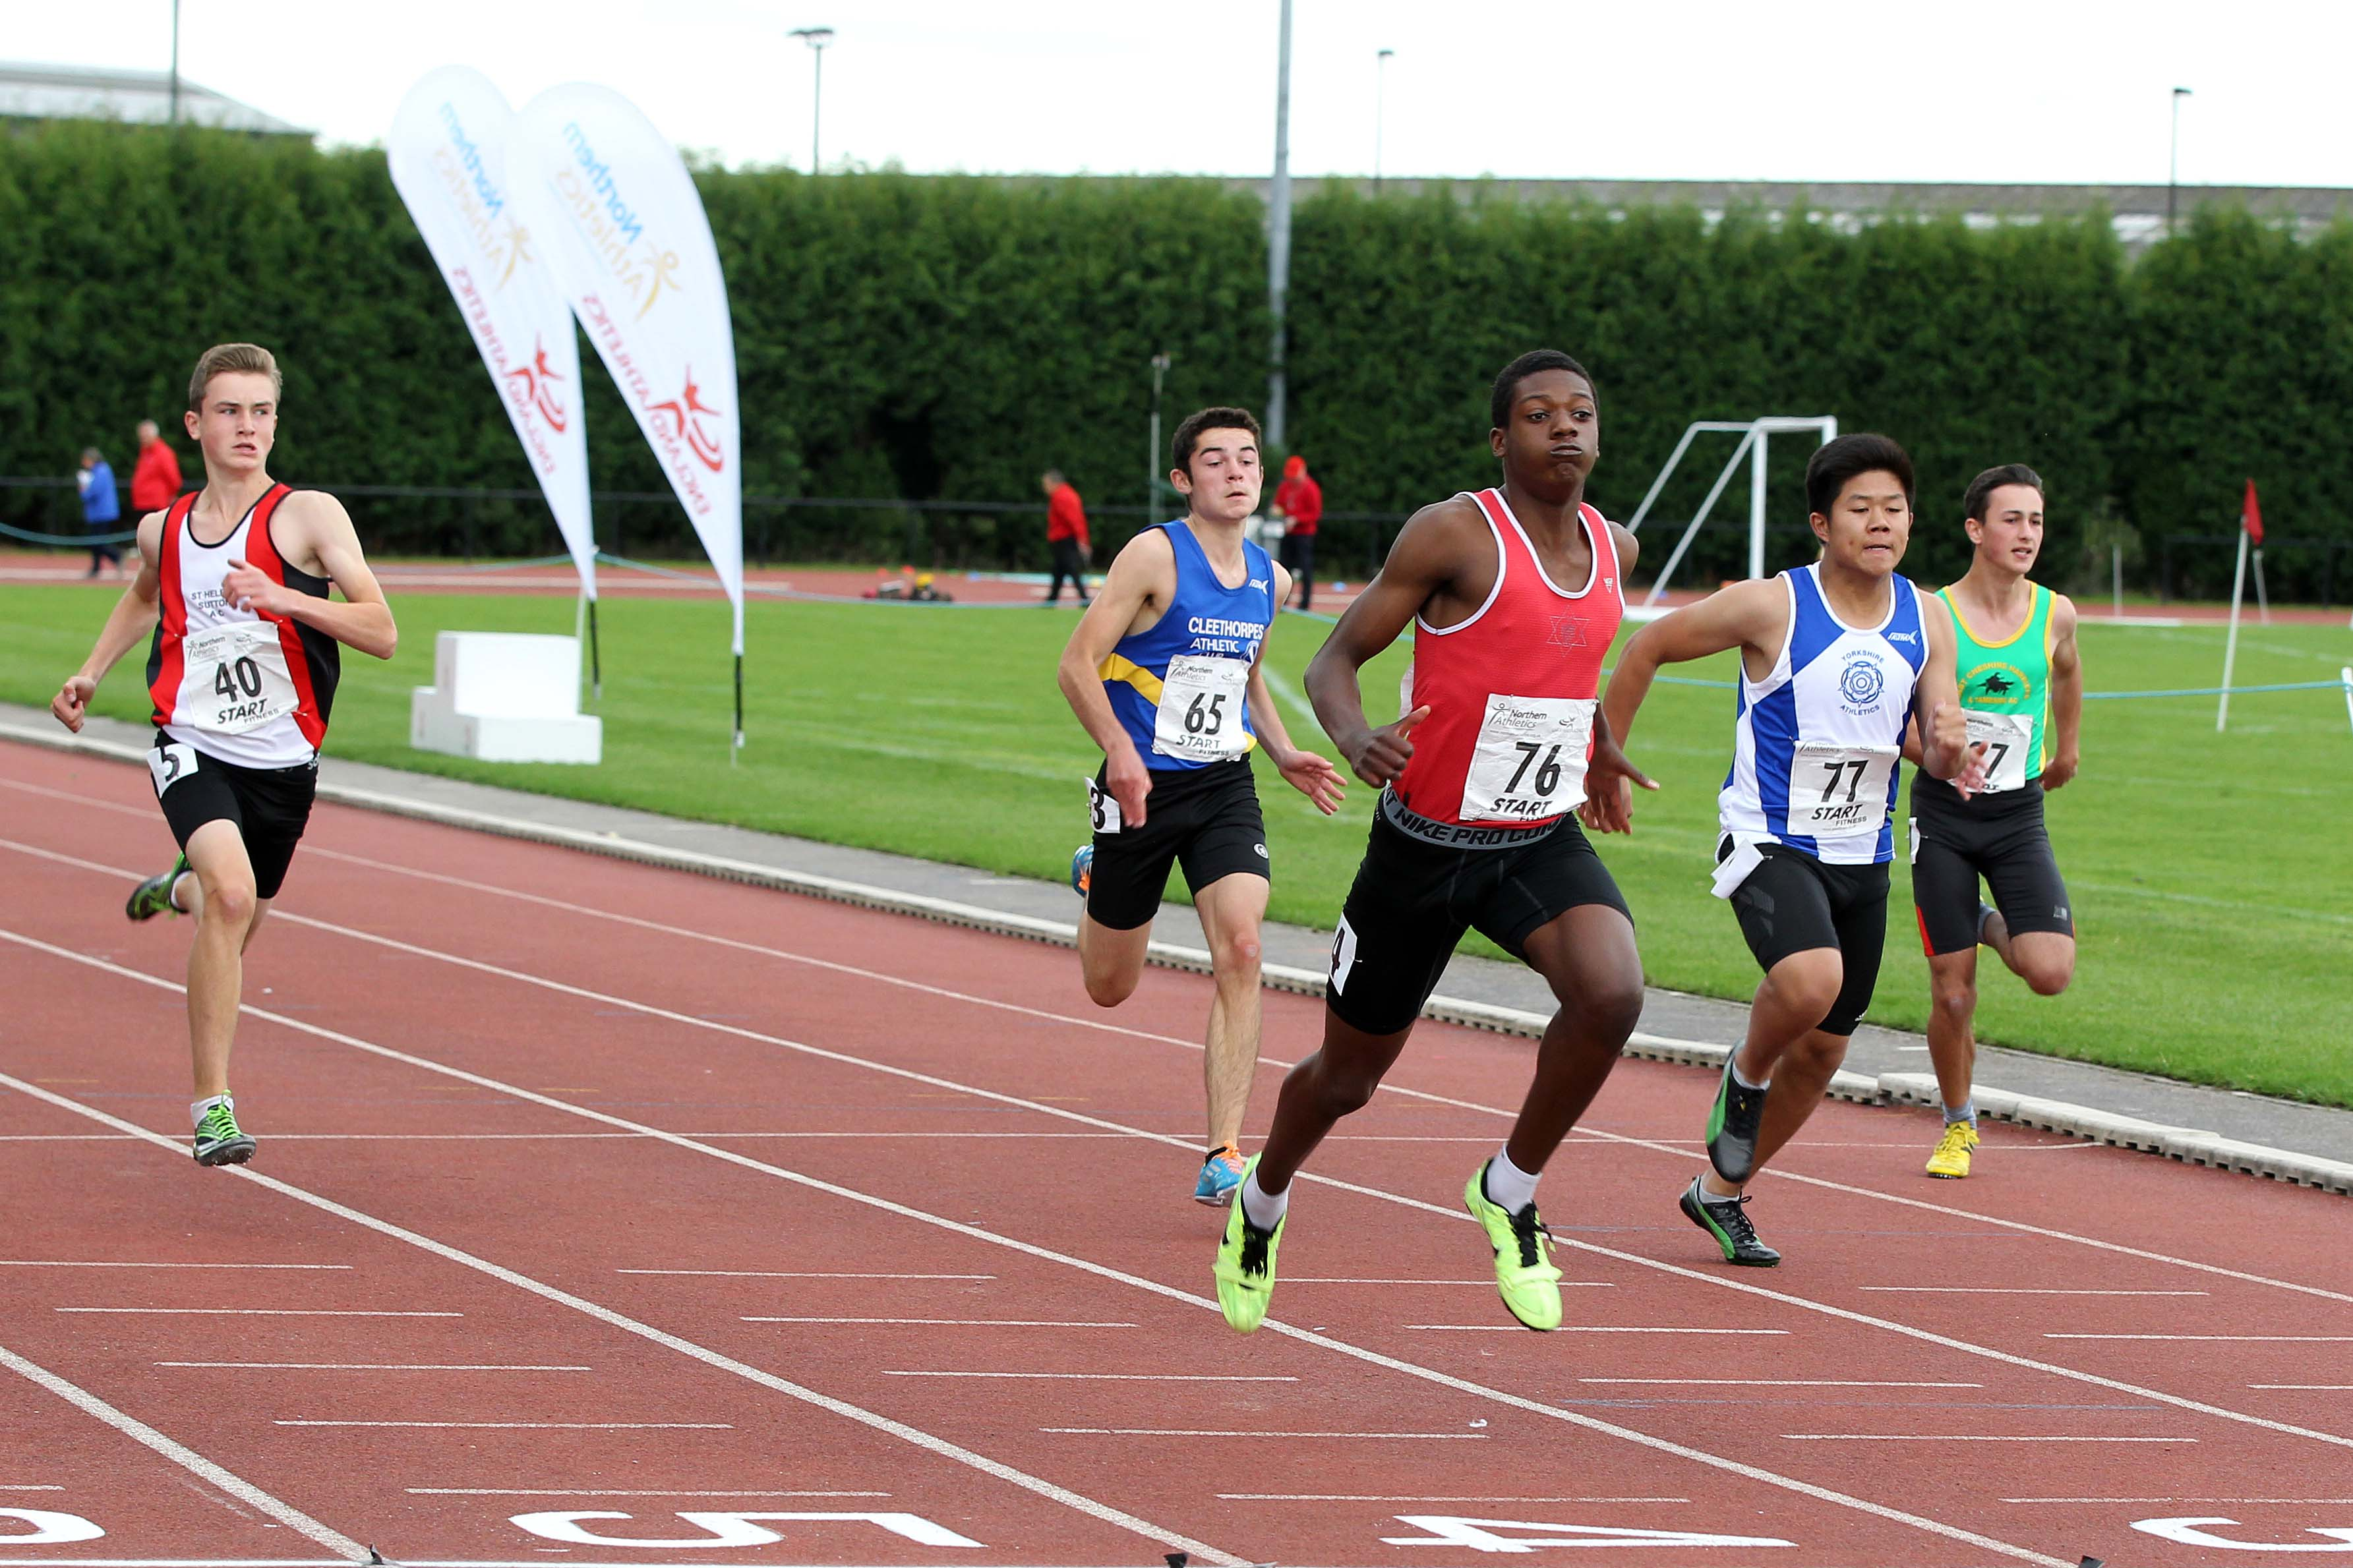 Northern Athletics Under 17 Championships Day 1 Report